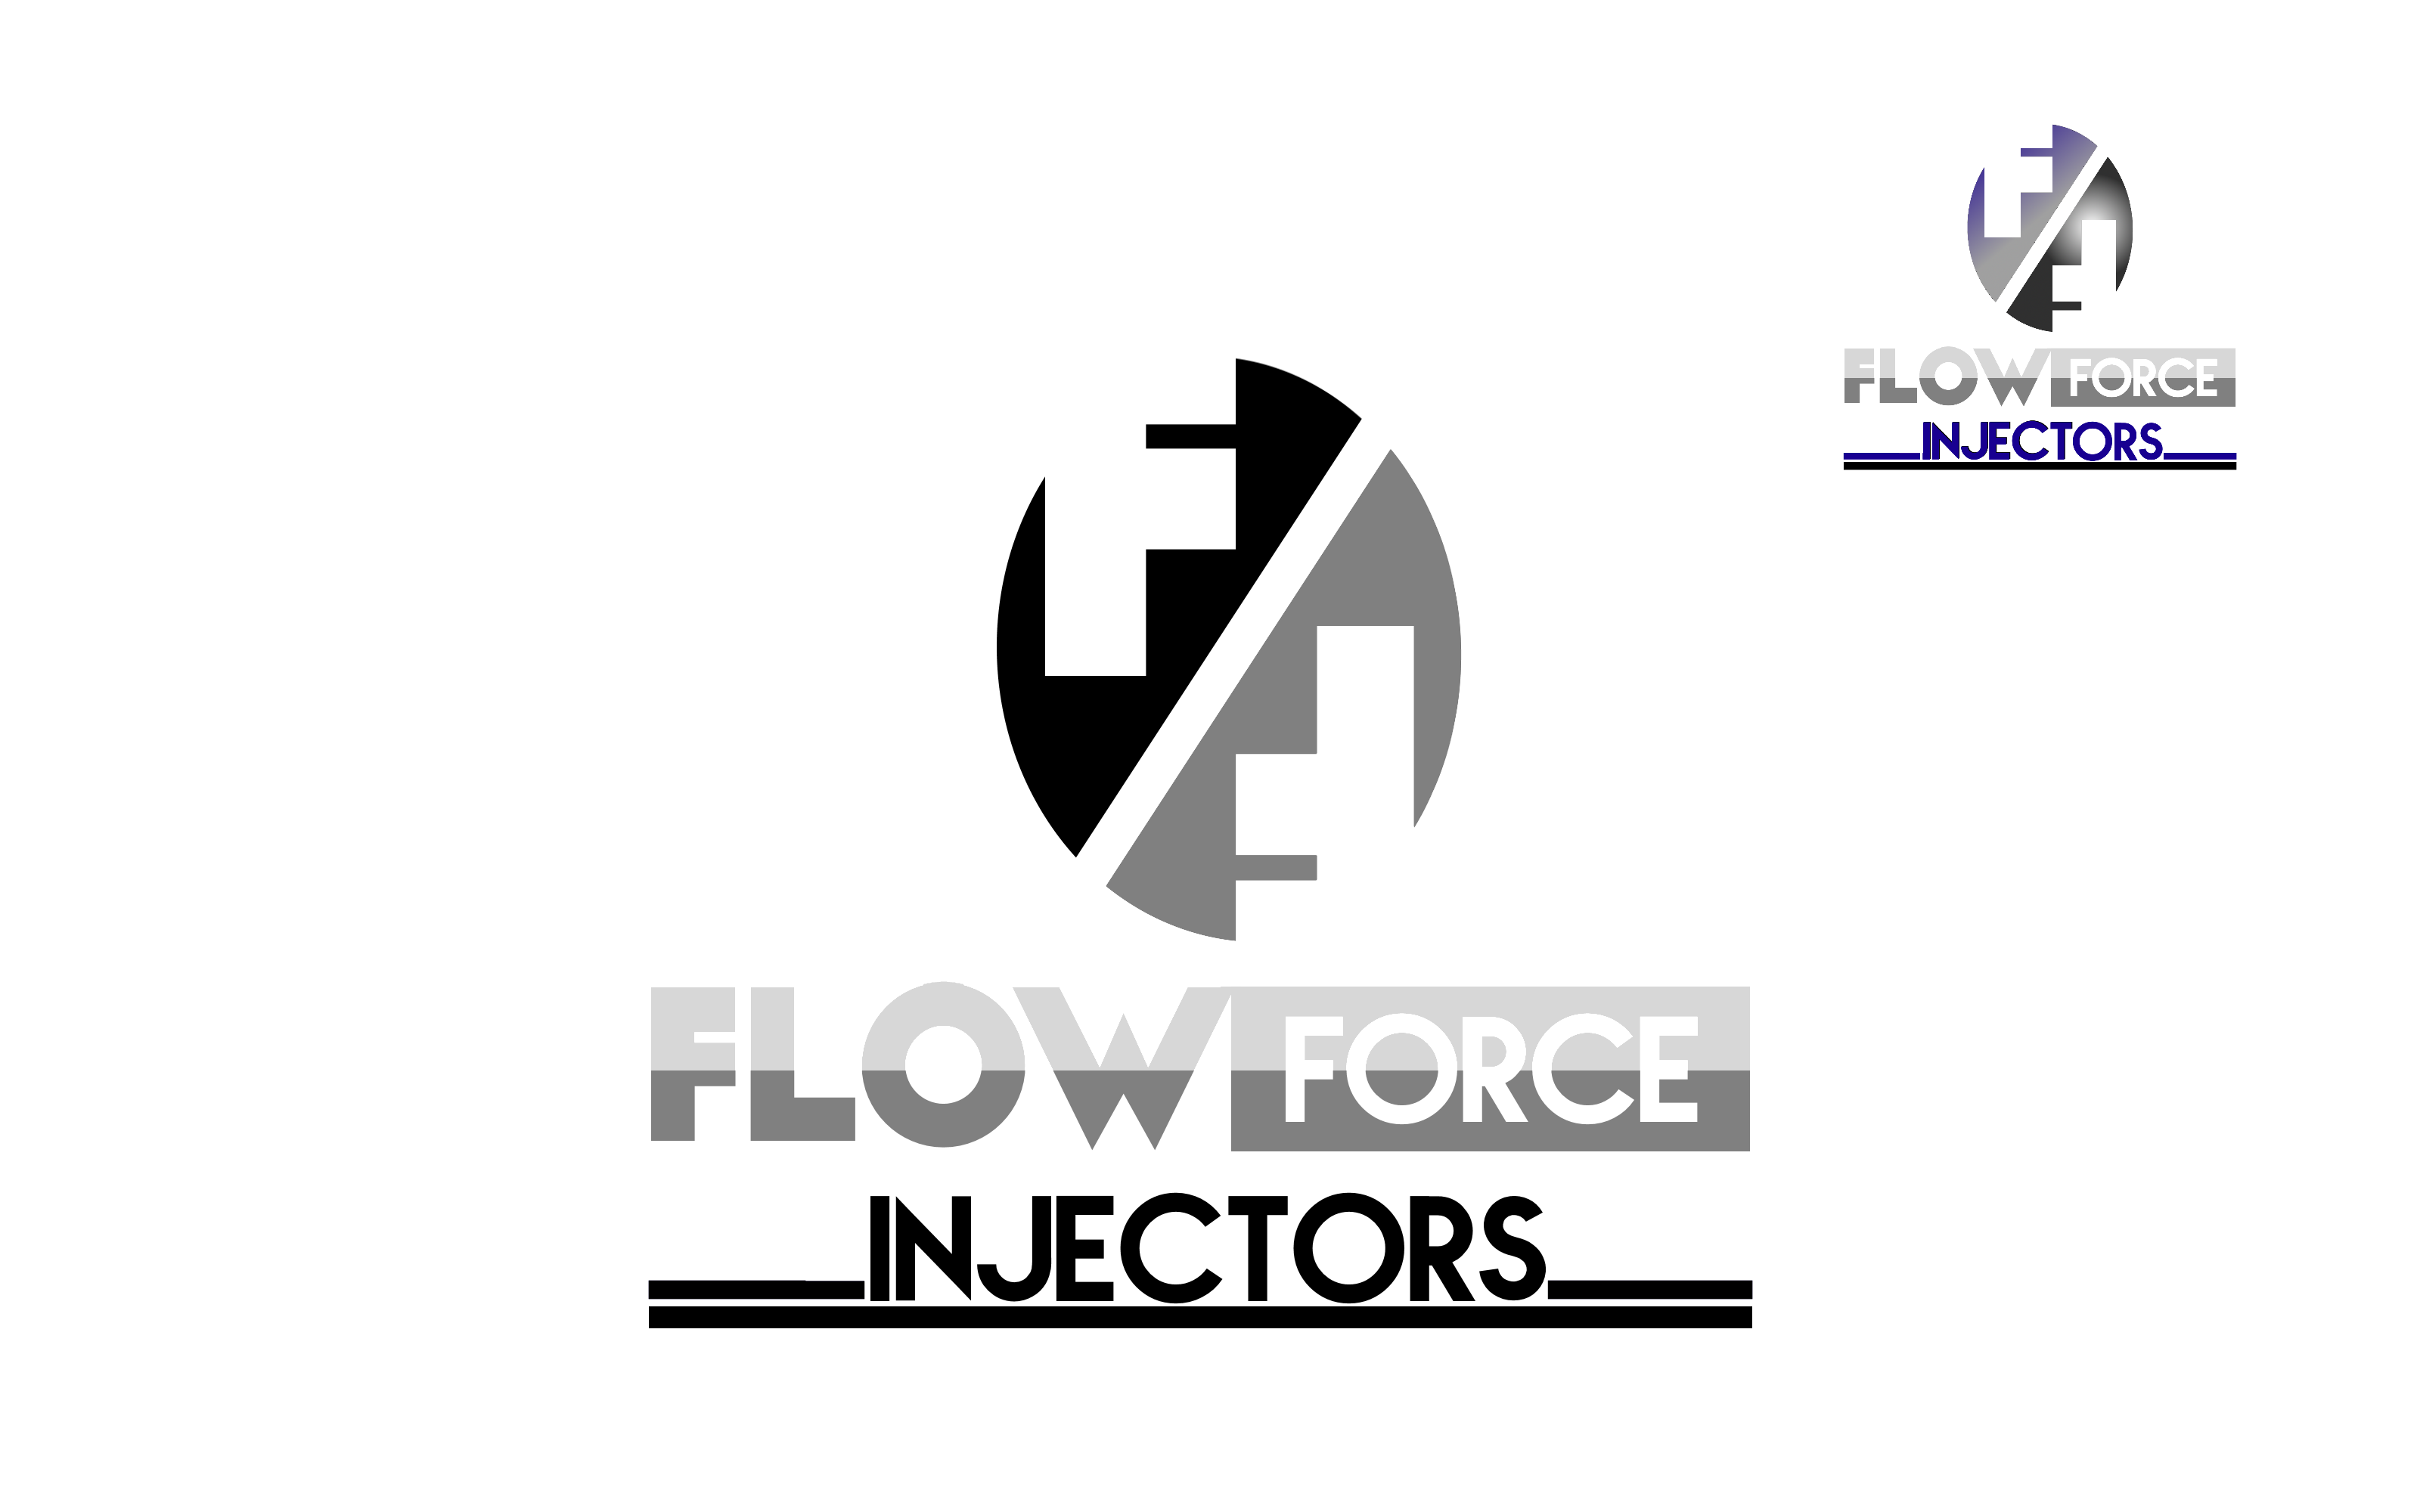 Logo Design by Roberto Bassi - Entry No. 117 in the Logo Design Contest Fun Logo Design for Flow Force Injectors.